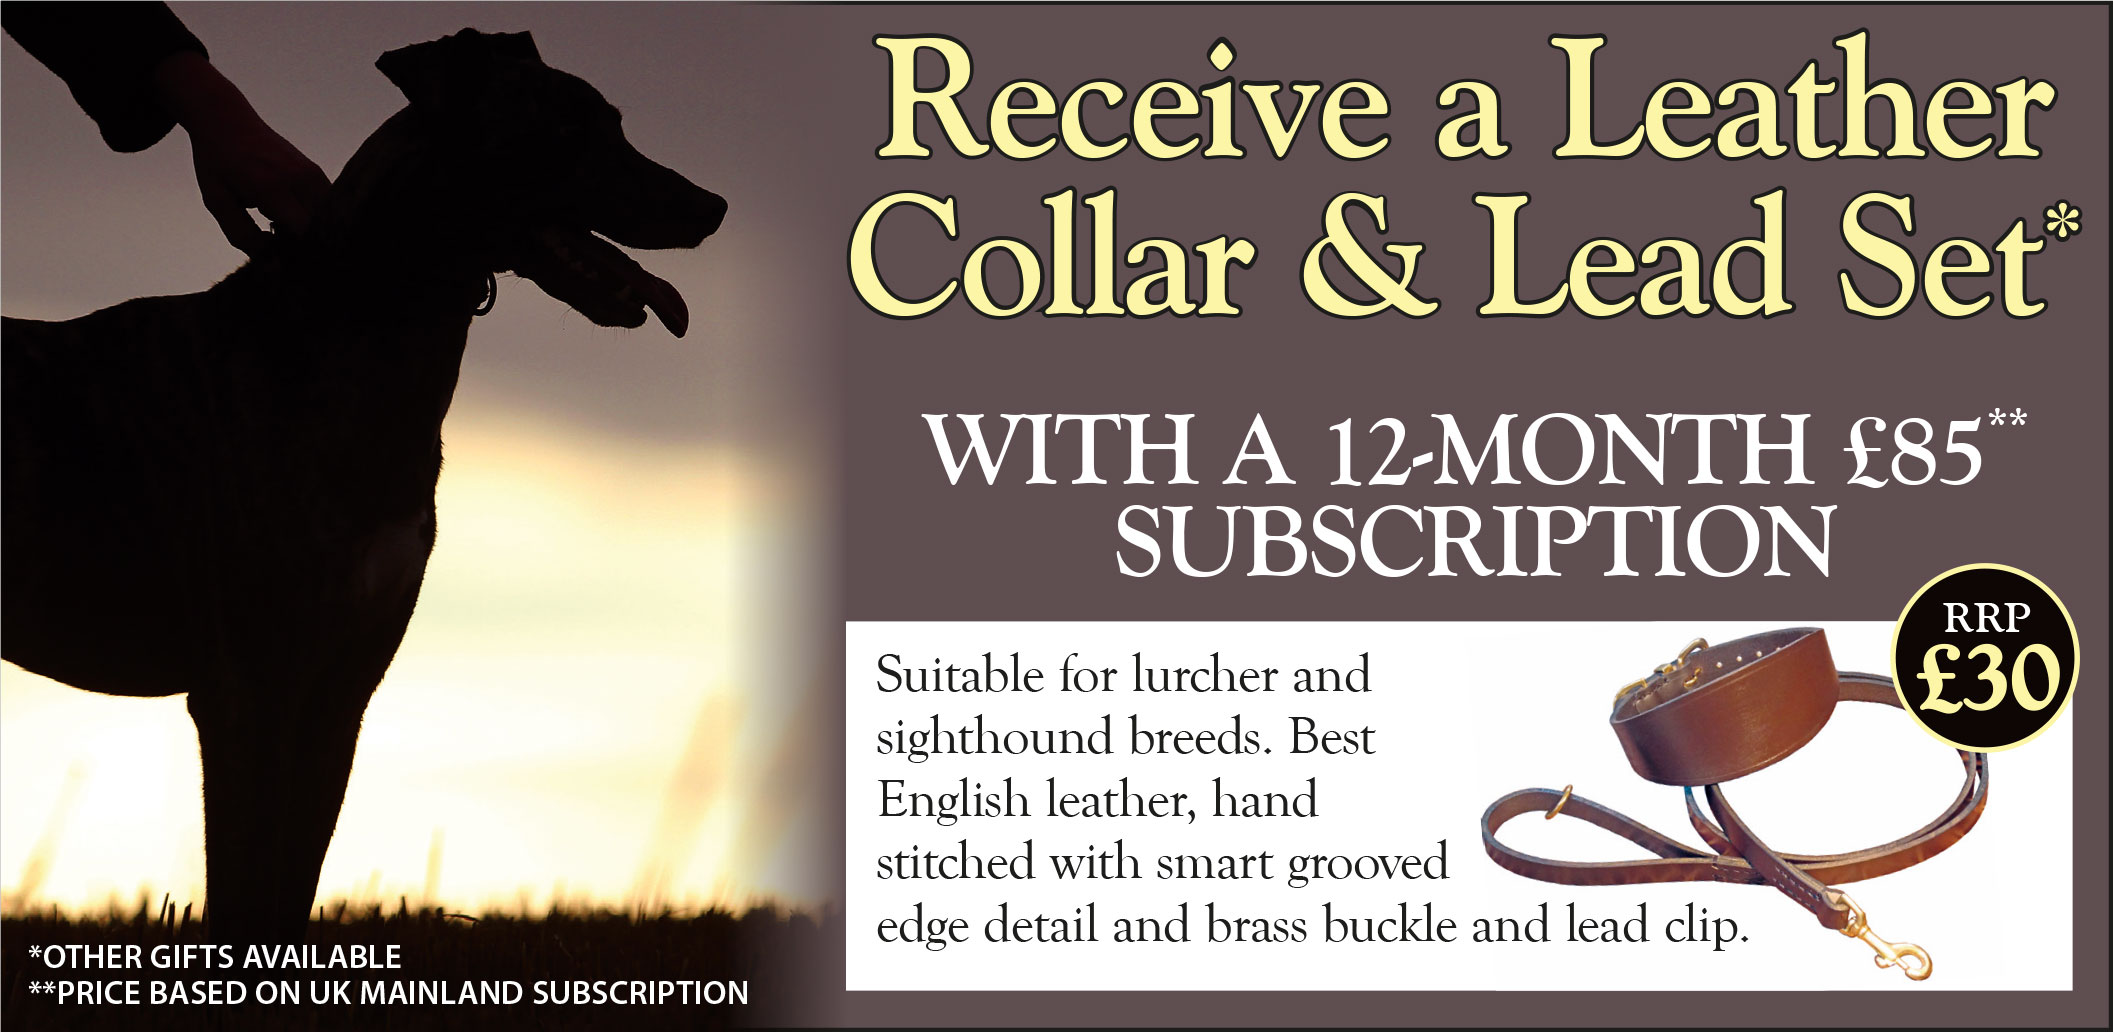 cmw fp carousel collar and lead set